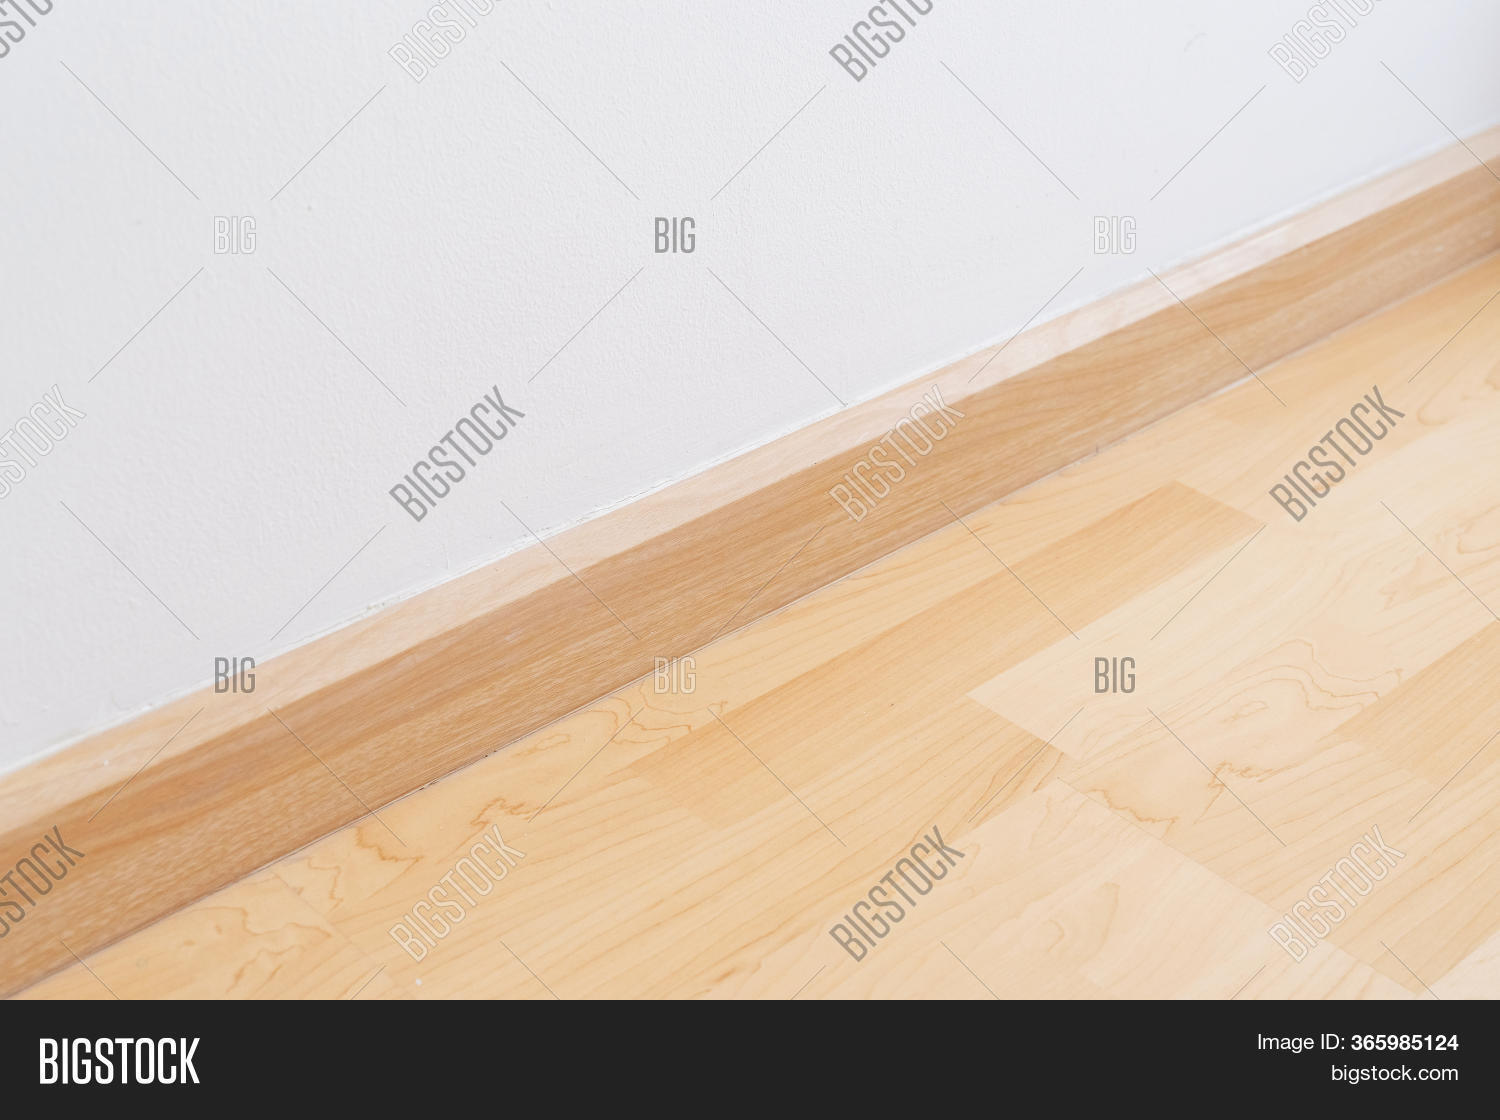 Wooden Wall Base Image & Photo (Free Trial)   Bigstock